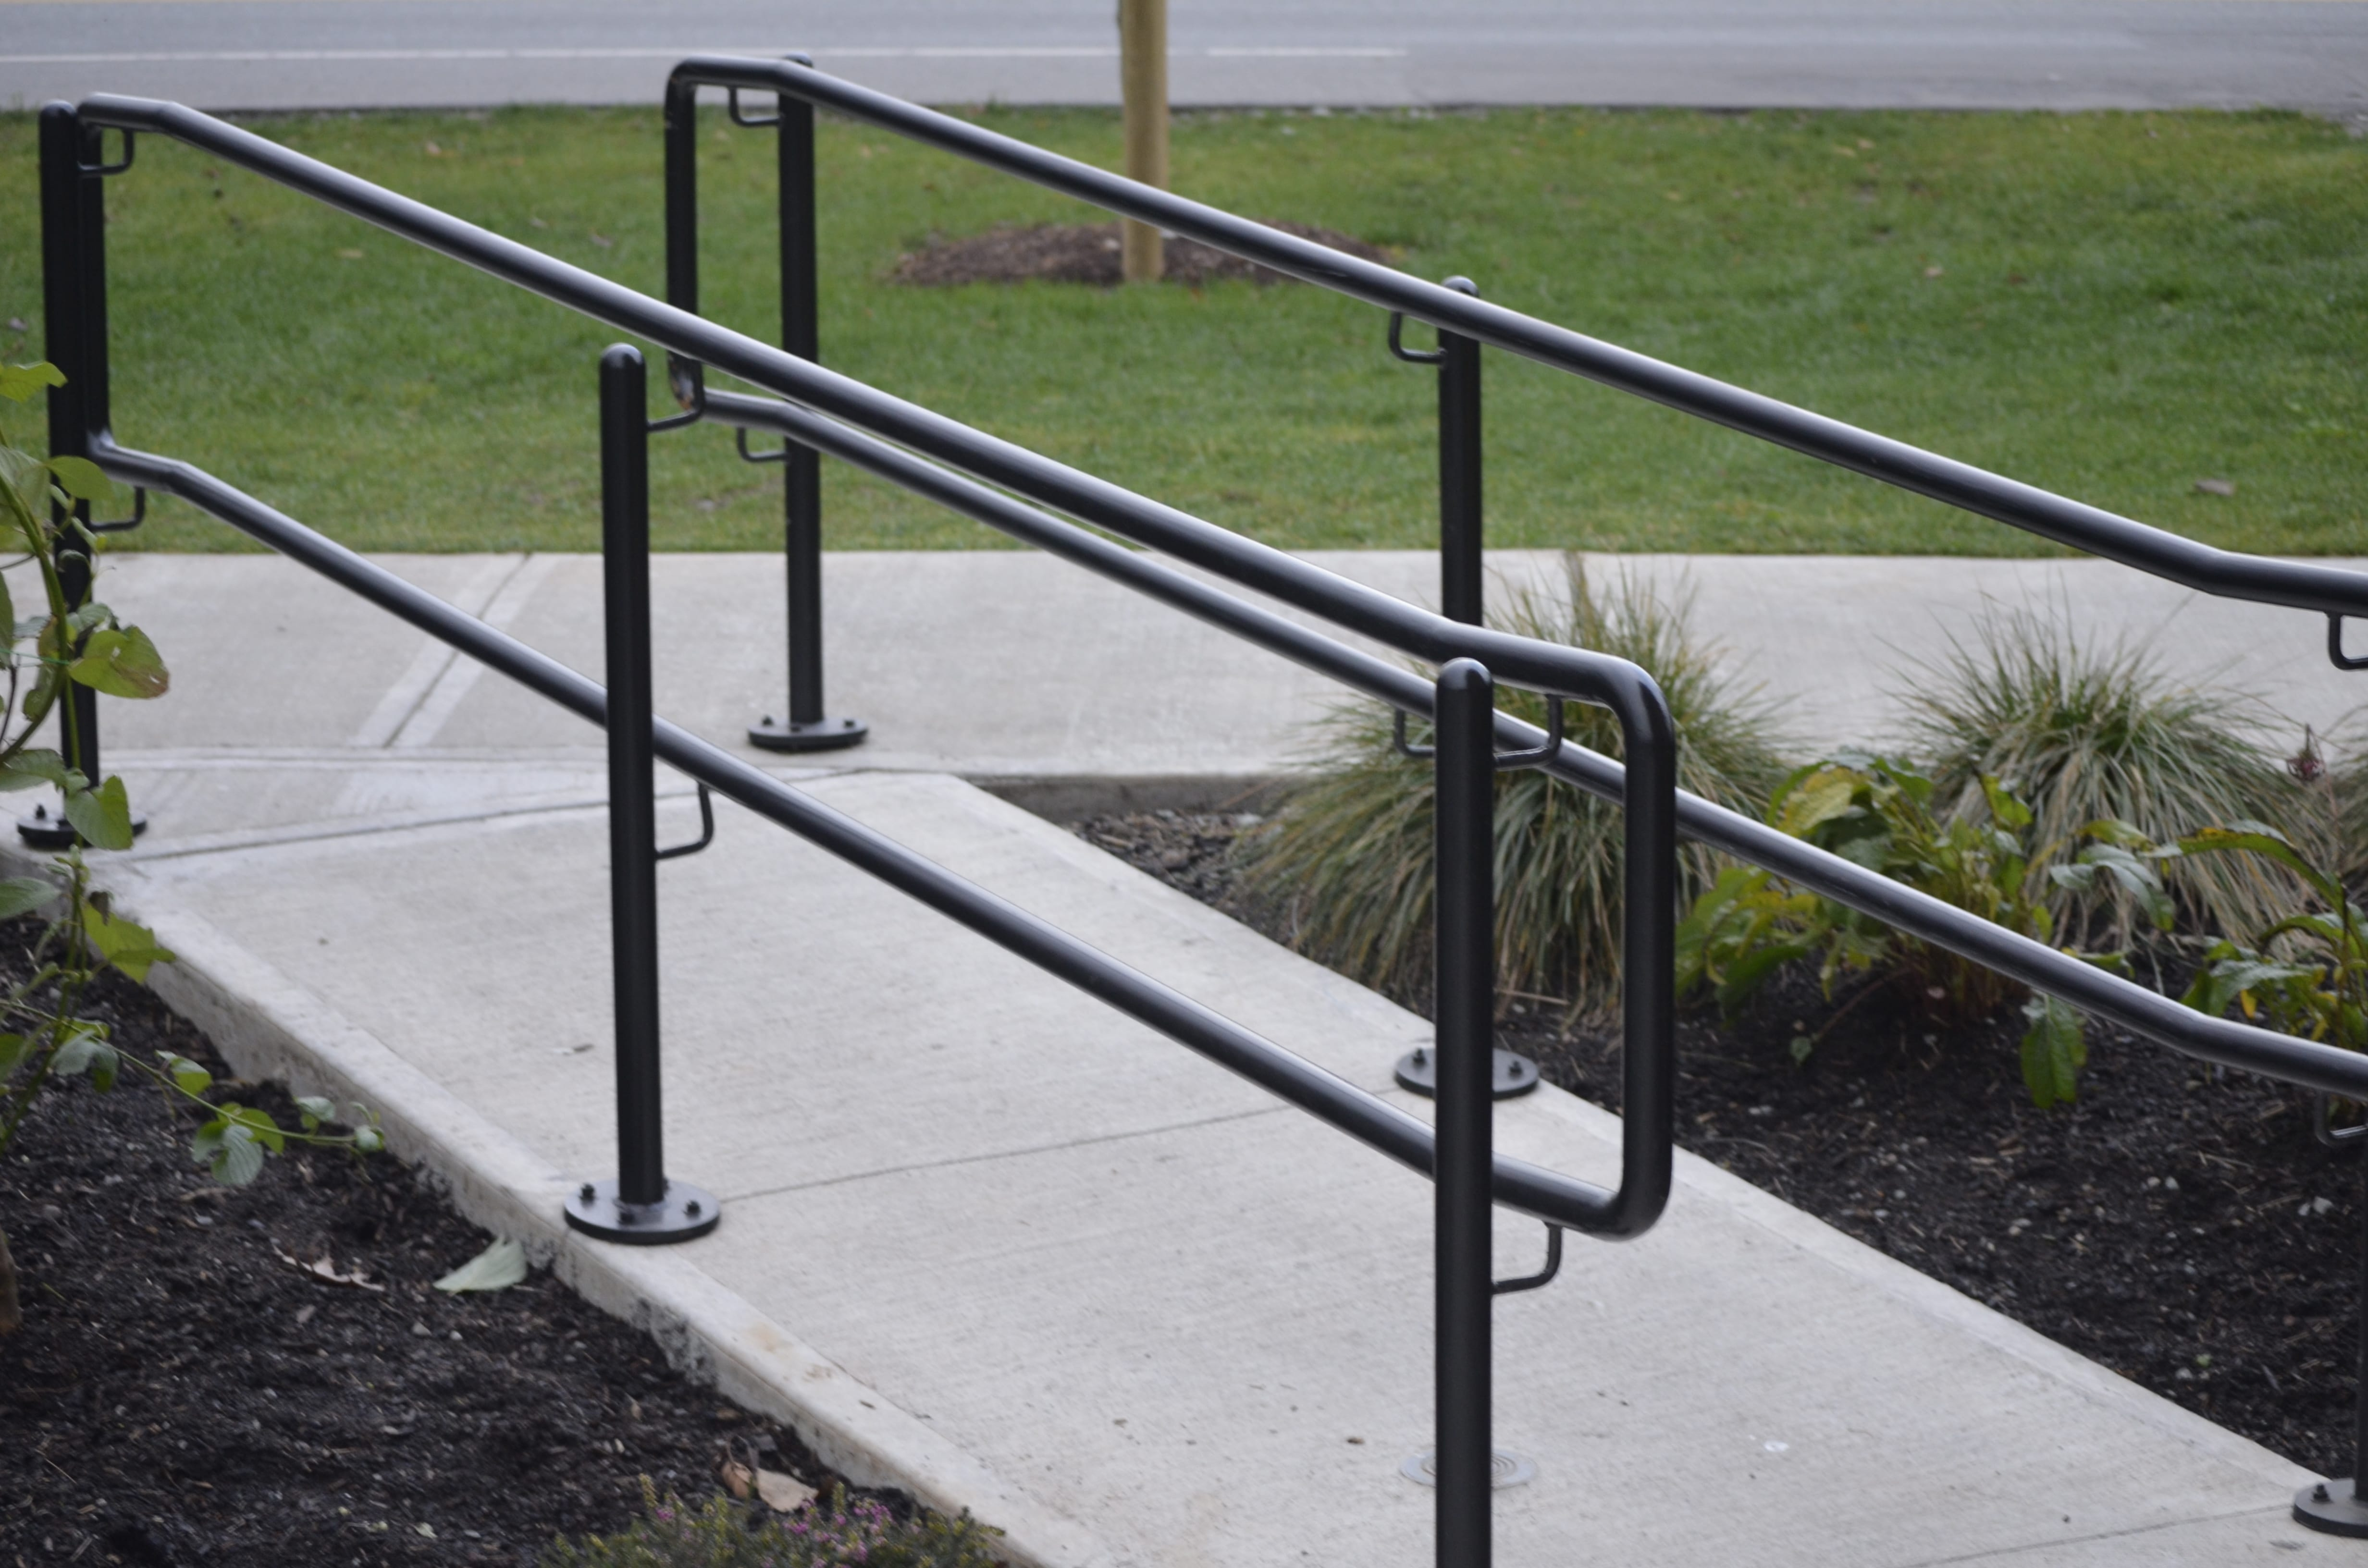 Outdoor Handrails For Sale In Bc Handrails For Steps Ramps | Outdoor Steps For Sale